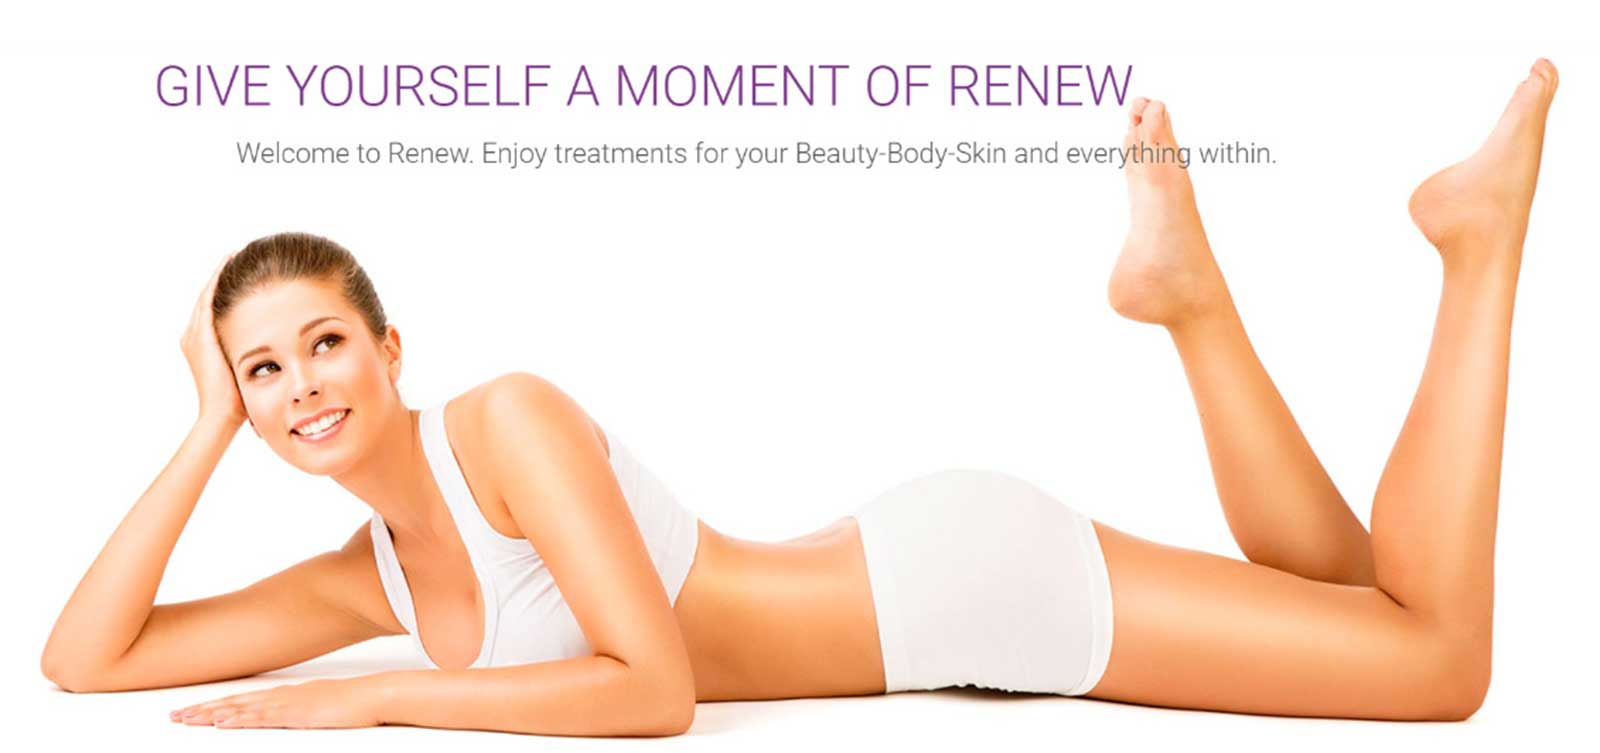 Cellulite Removal And Facial Skin Tightening At Renew Body Contouring